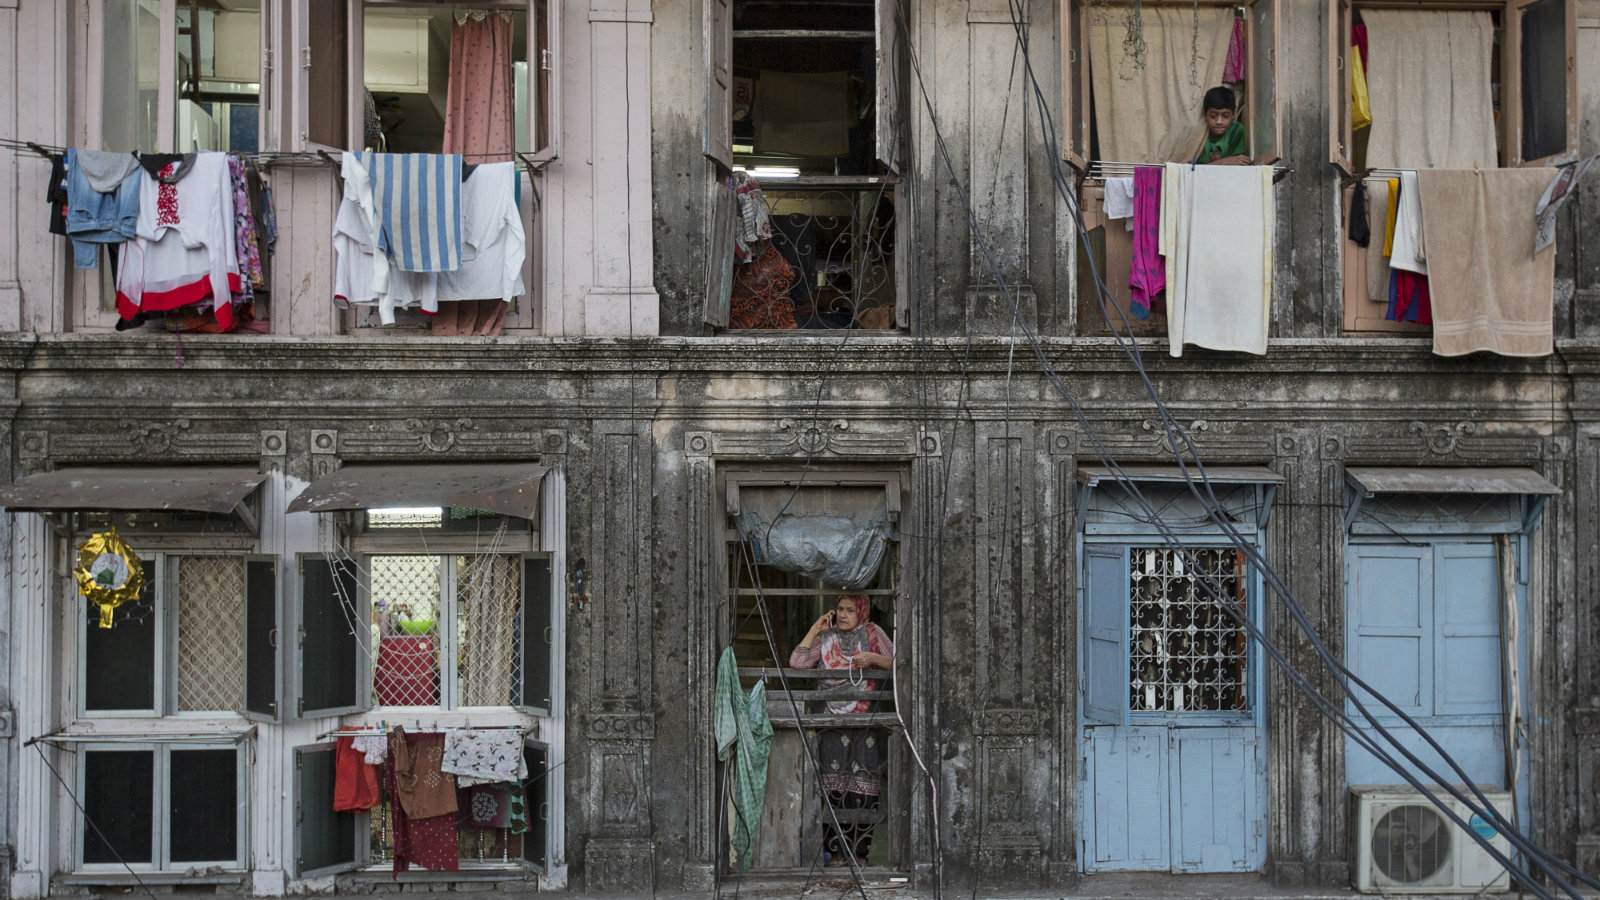 Residents look out of windows of an apartment in Mumbai March 15, 2015. The cost for buying a 200 square feet (18 square meters) one-bedroom apartment in this building is around 25,000 Indian rupees per square feet ($ 400) or 5,000,000 Indian rupees ($ 80,000). The rent for an apartment in the same building is around 12,000 Indian rupees ($ 190) per month.